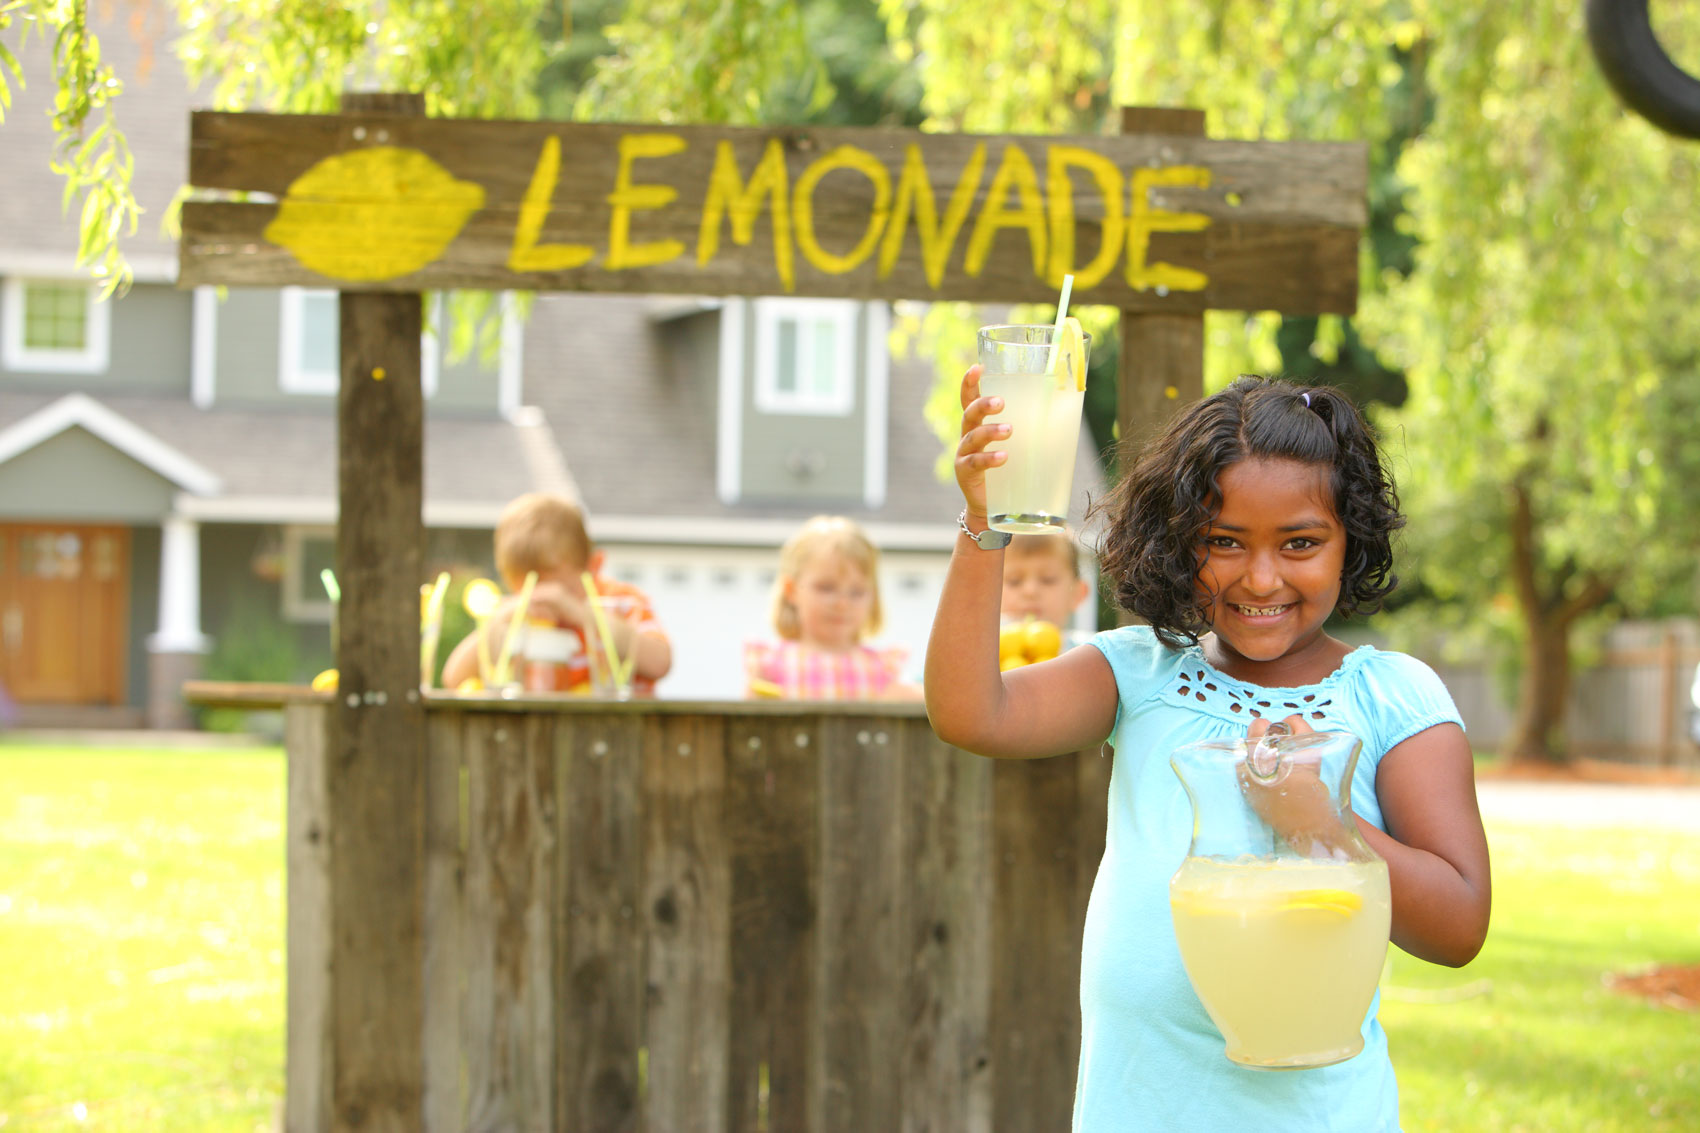 What Your Business Can Learn From Lemonade